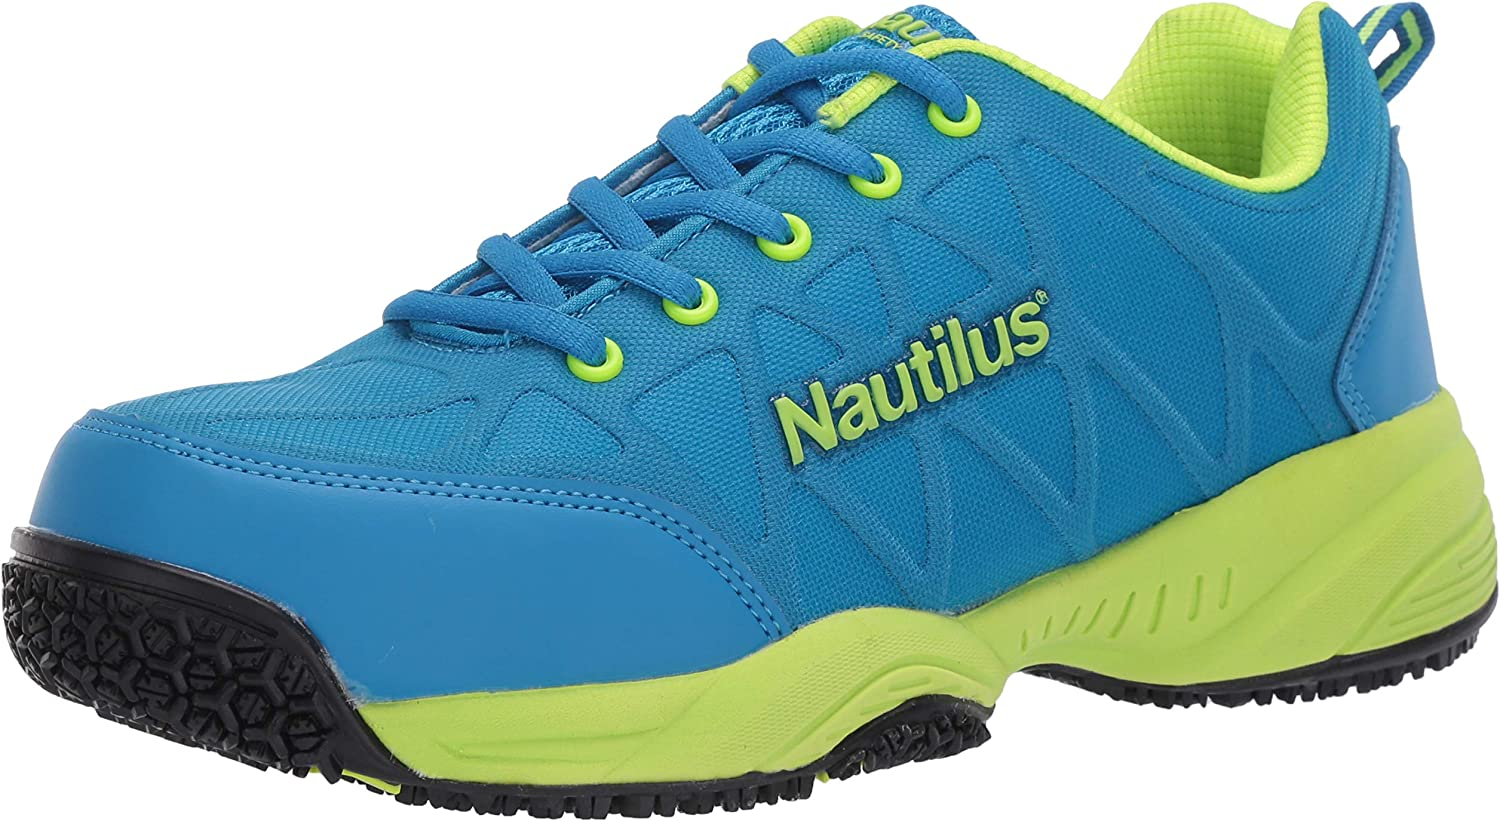 Nautilus Safety Footwear Specialty EH N2154 Women's Comp Toe Athletic Work Shoes